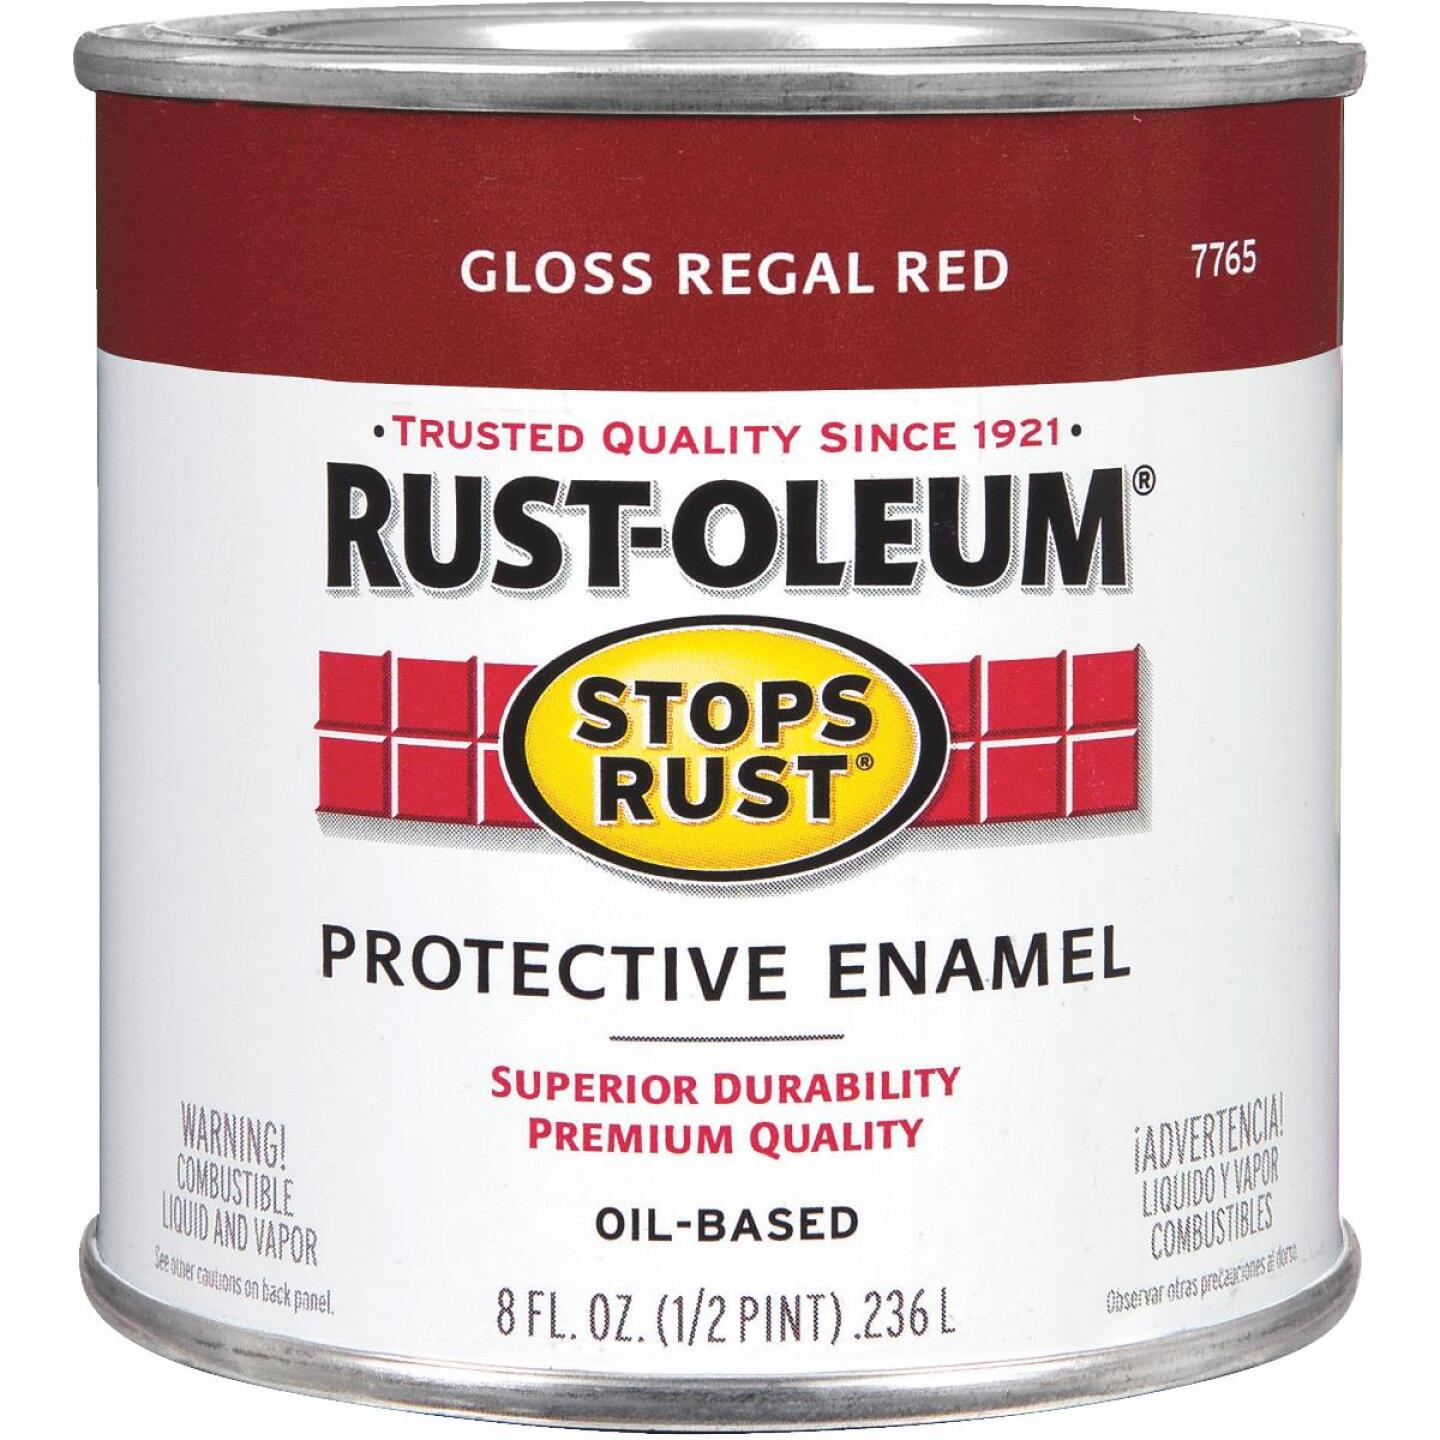 Rust-Oleum Stops Rust Oil Based Gloss Protective Rust Control Enamel, Regal Red, 1/2 Pt. Image 1